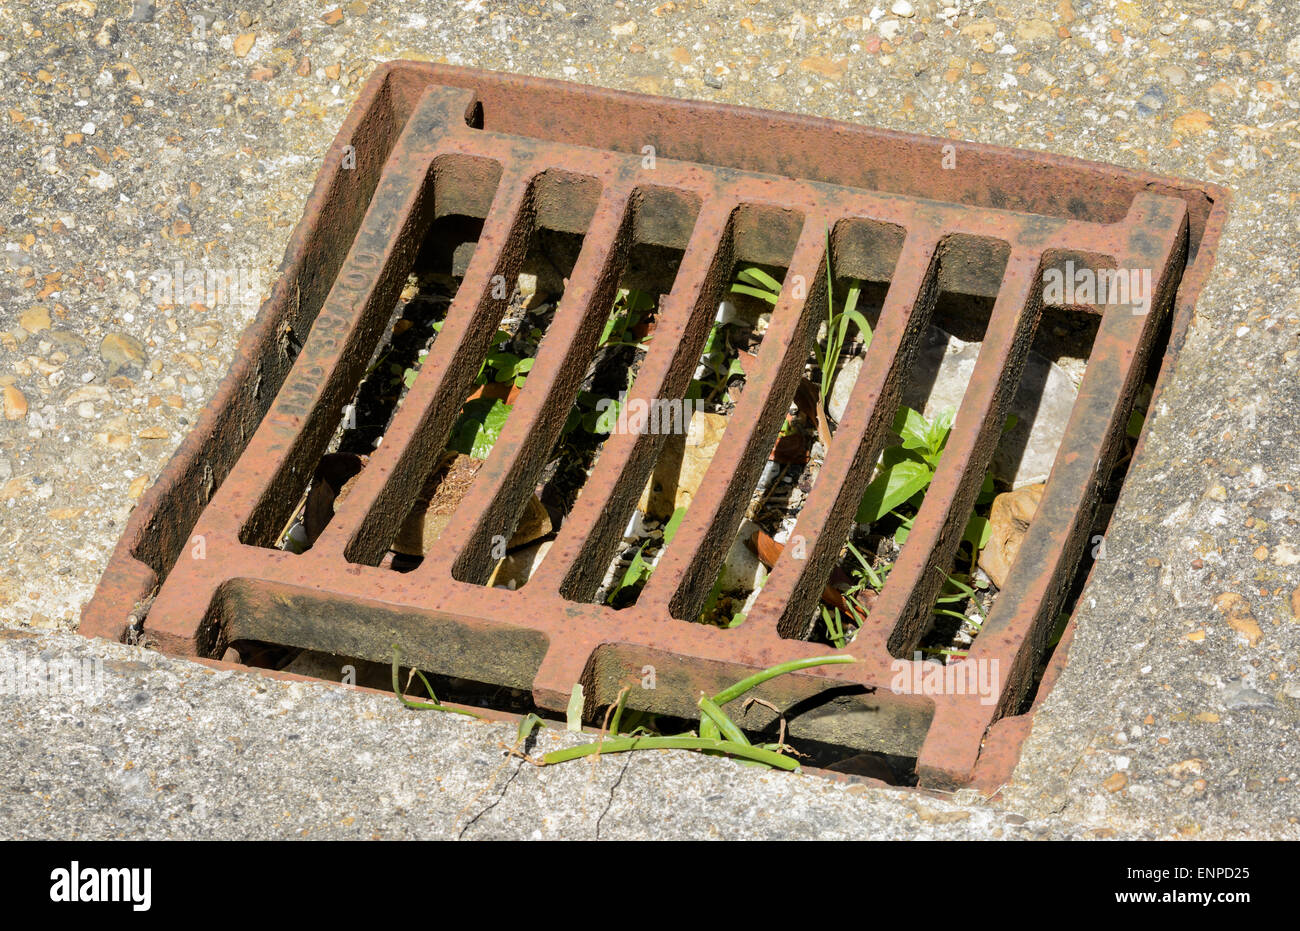 Dried up rusted metallic drain cover. - Stock Image